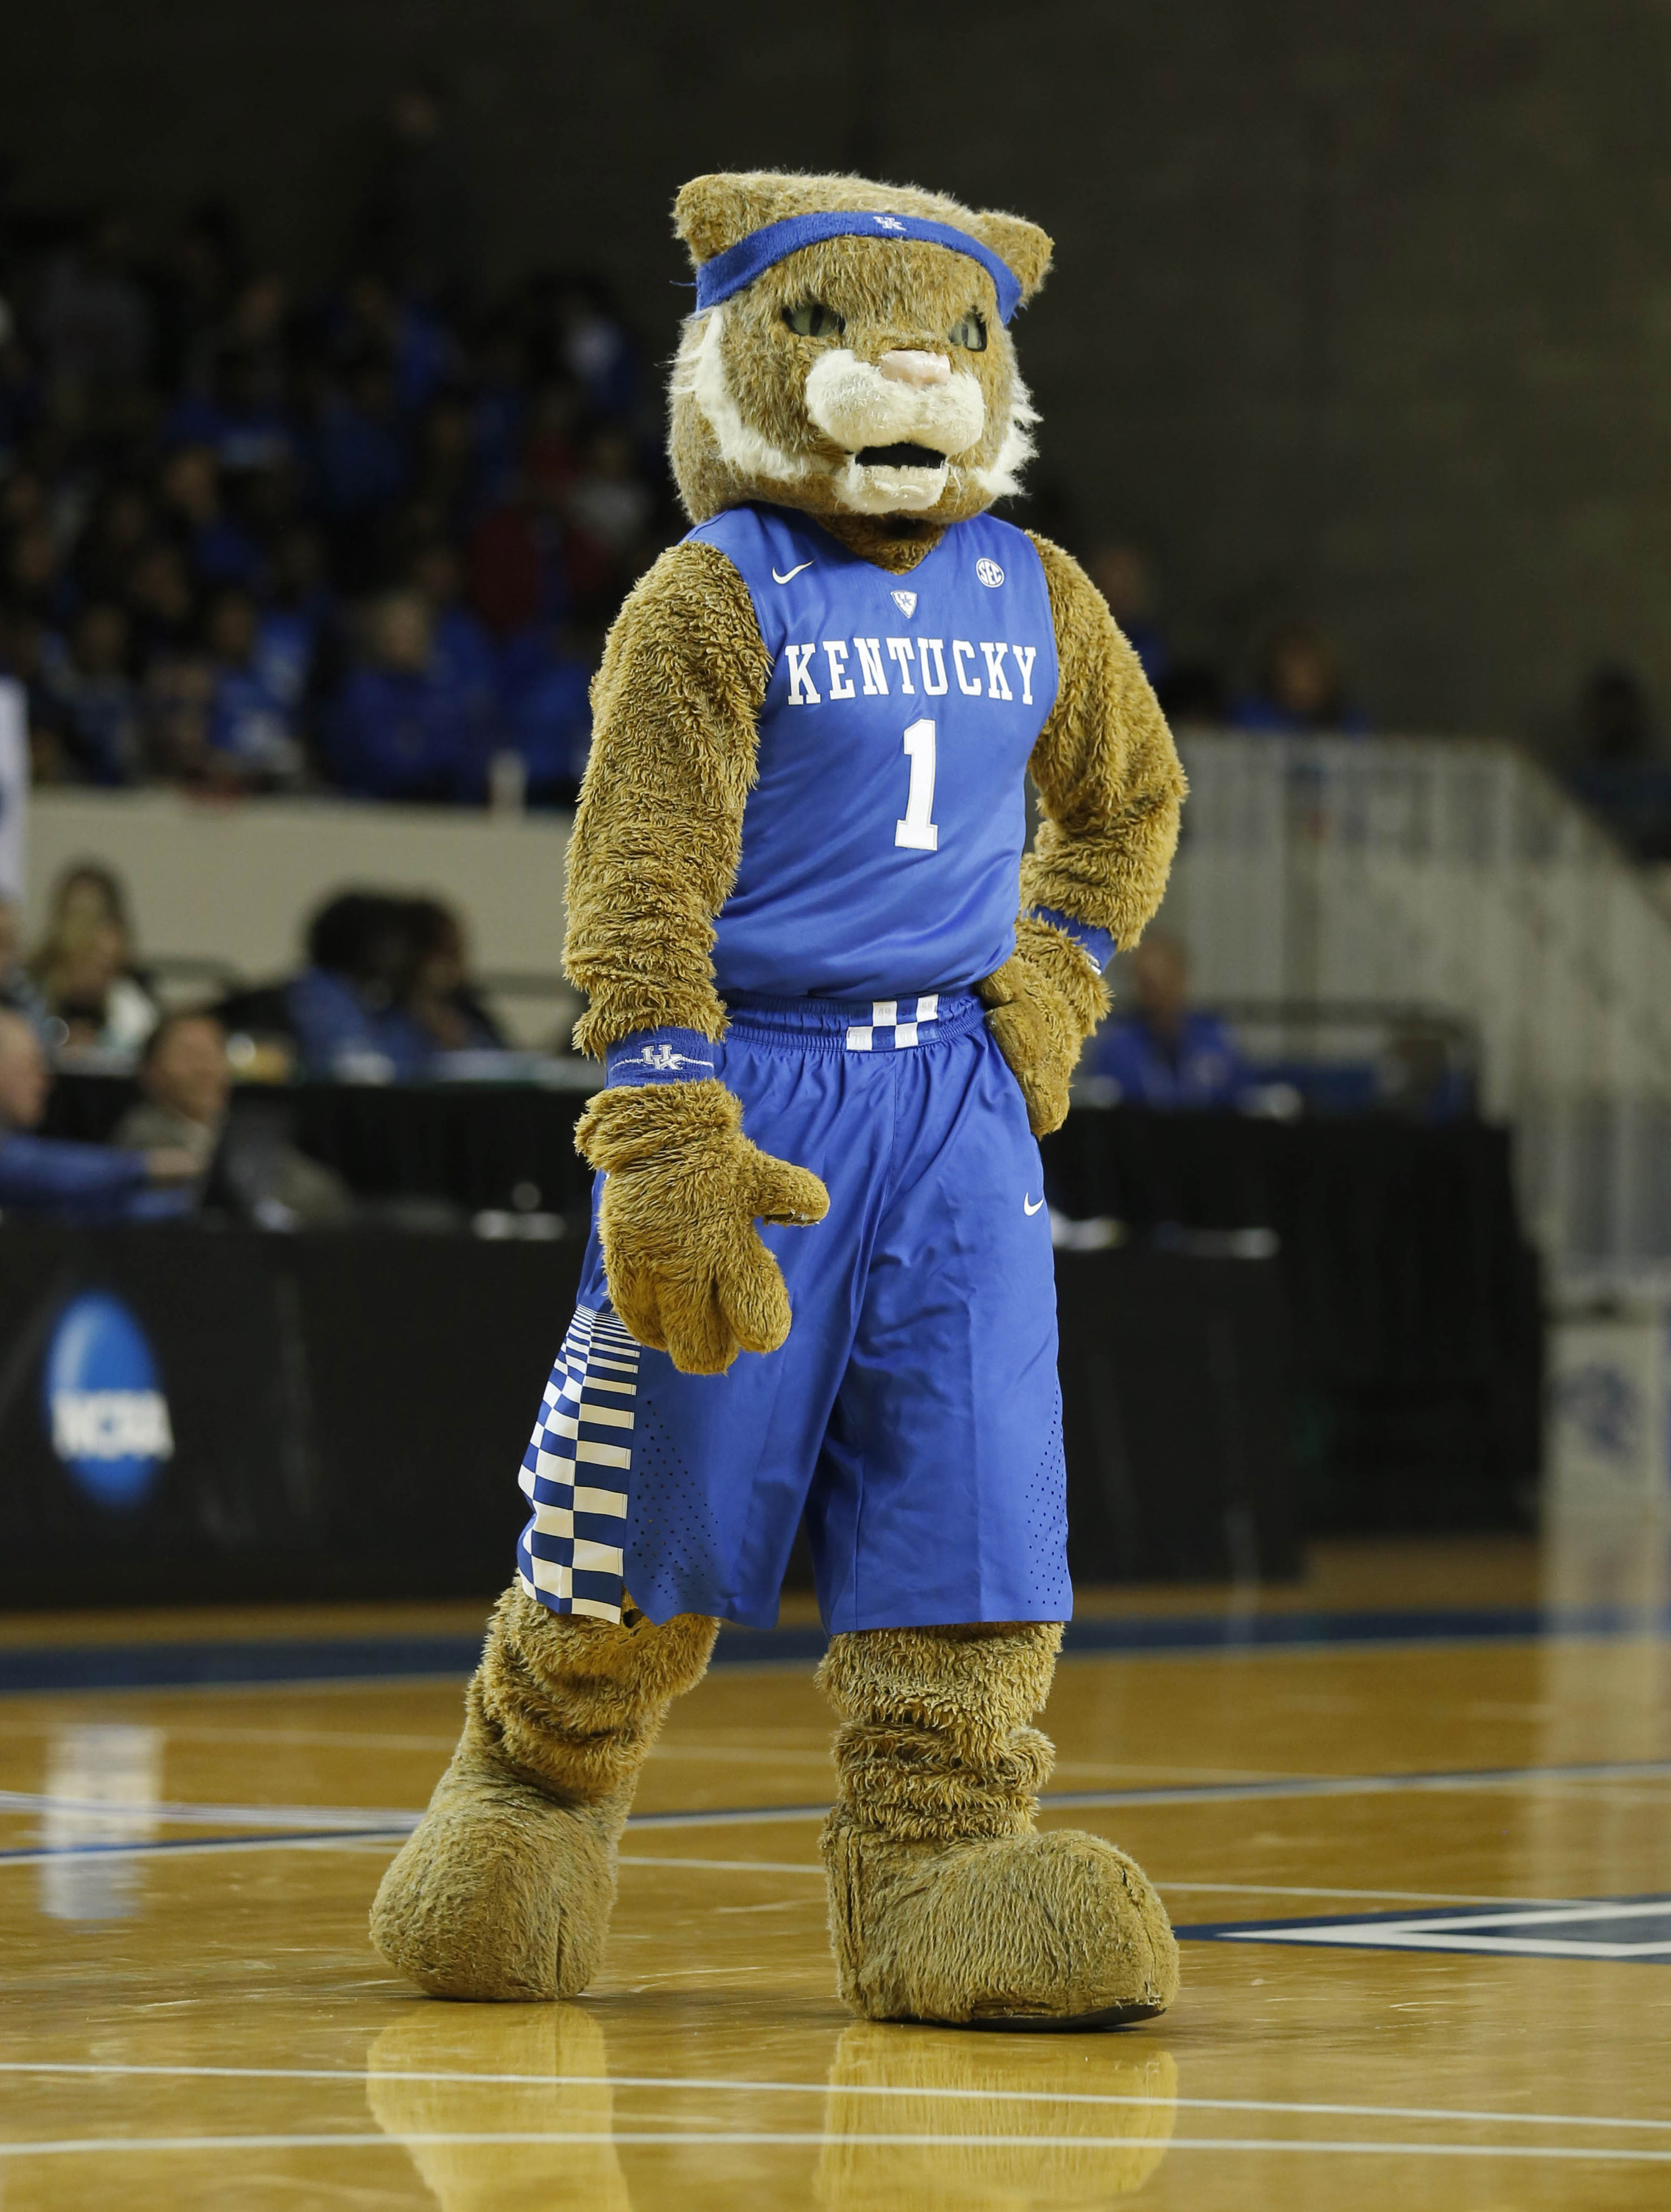 The Wildcat may be tired from all those pushups last night, but will still be at Memorial to cheer on the Cats!